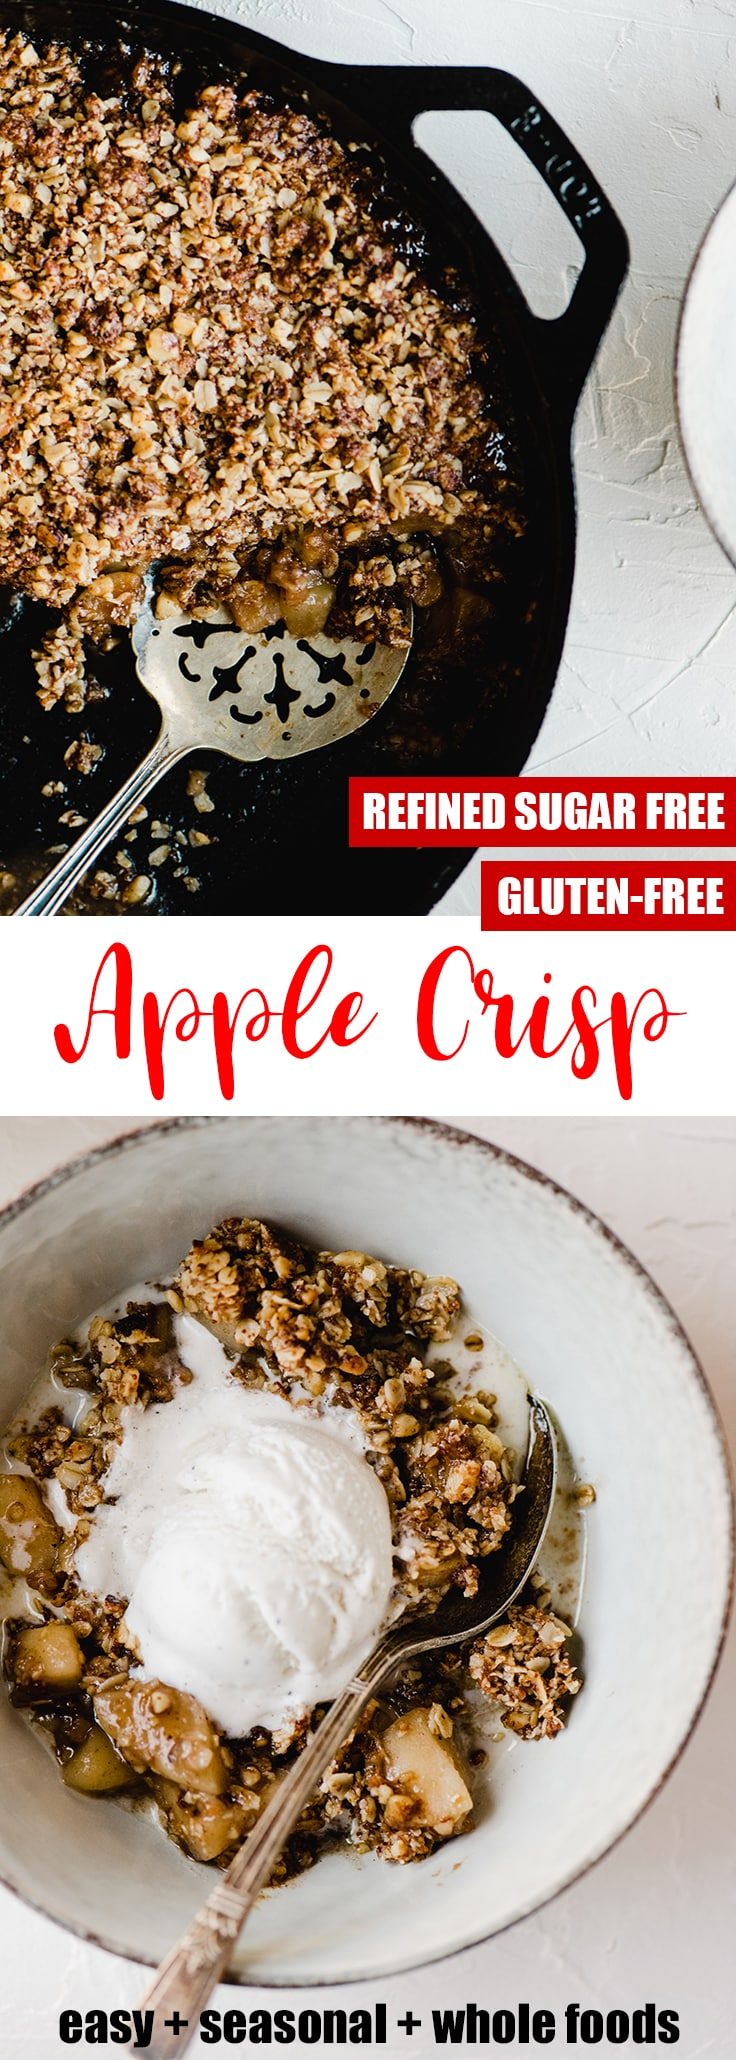 This gluten free apple crisp is a lightened up and refined sugar free version of the Thanksgiving classic! It's sweetened with maple syrup and coconut sugar, and topped with gluten free oats, pecans, and walnuts. It's made start to finish in a cast iron skillet resulting in an equally tender and crisp texture. This is a healthy fall dessert recipe that will satisfy even the pickiest sweet tooth around your table.#glutenfree #sugarfree #applecrisp #thanksgivingdessert #falldessert